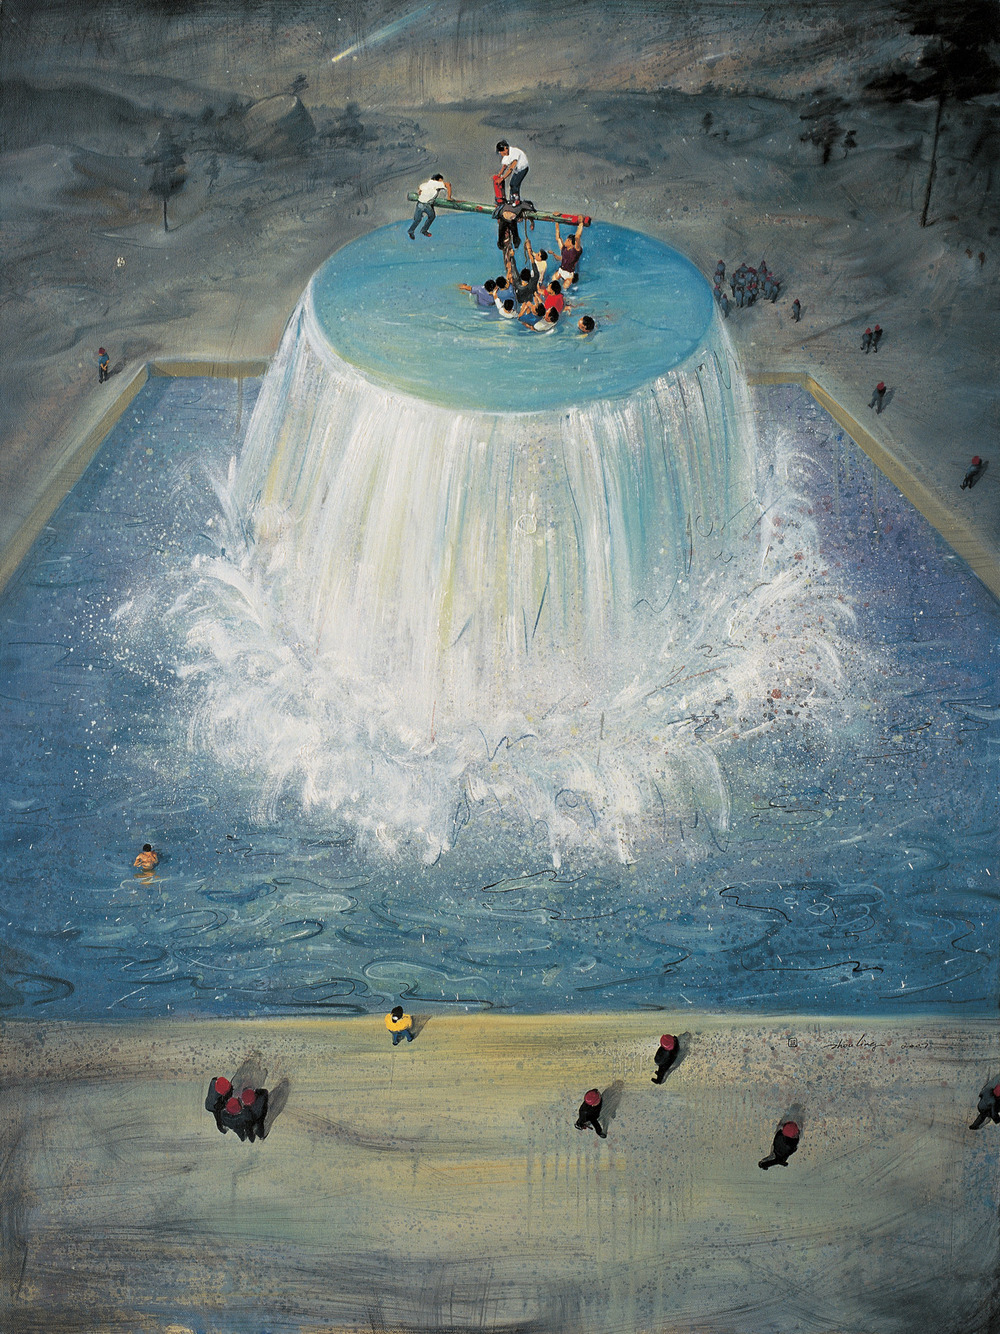 Zhou Jinhua 周金华, Fountain  No.1 源泉 No.1, 2007, Oil on canvas 布面油画, 145 x 110 cm